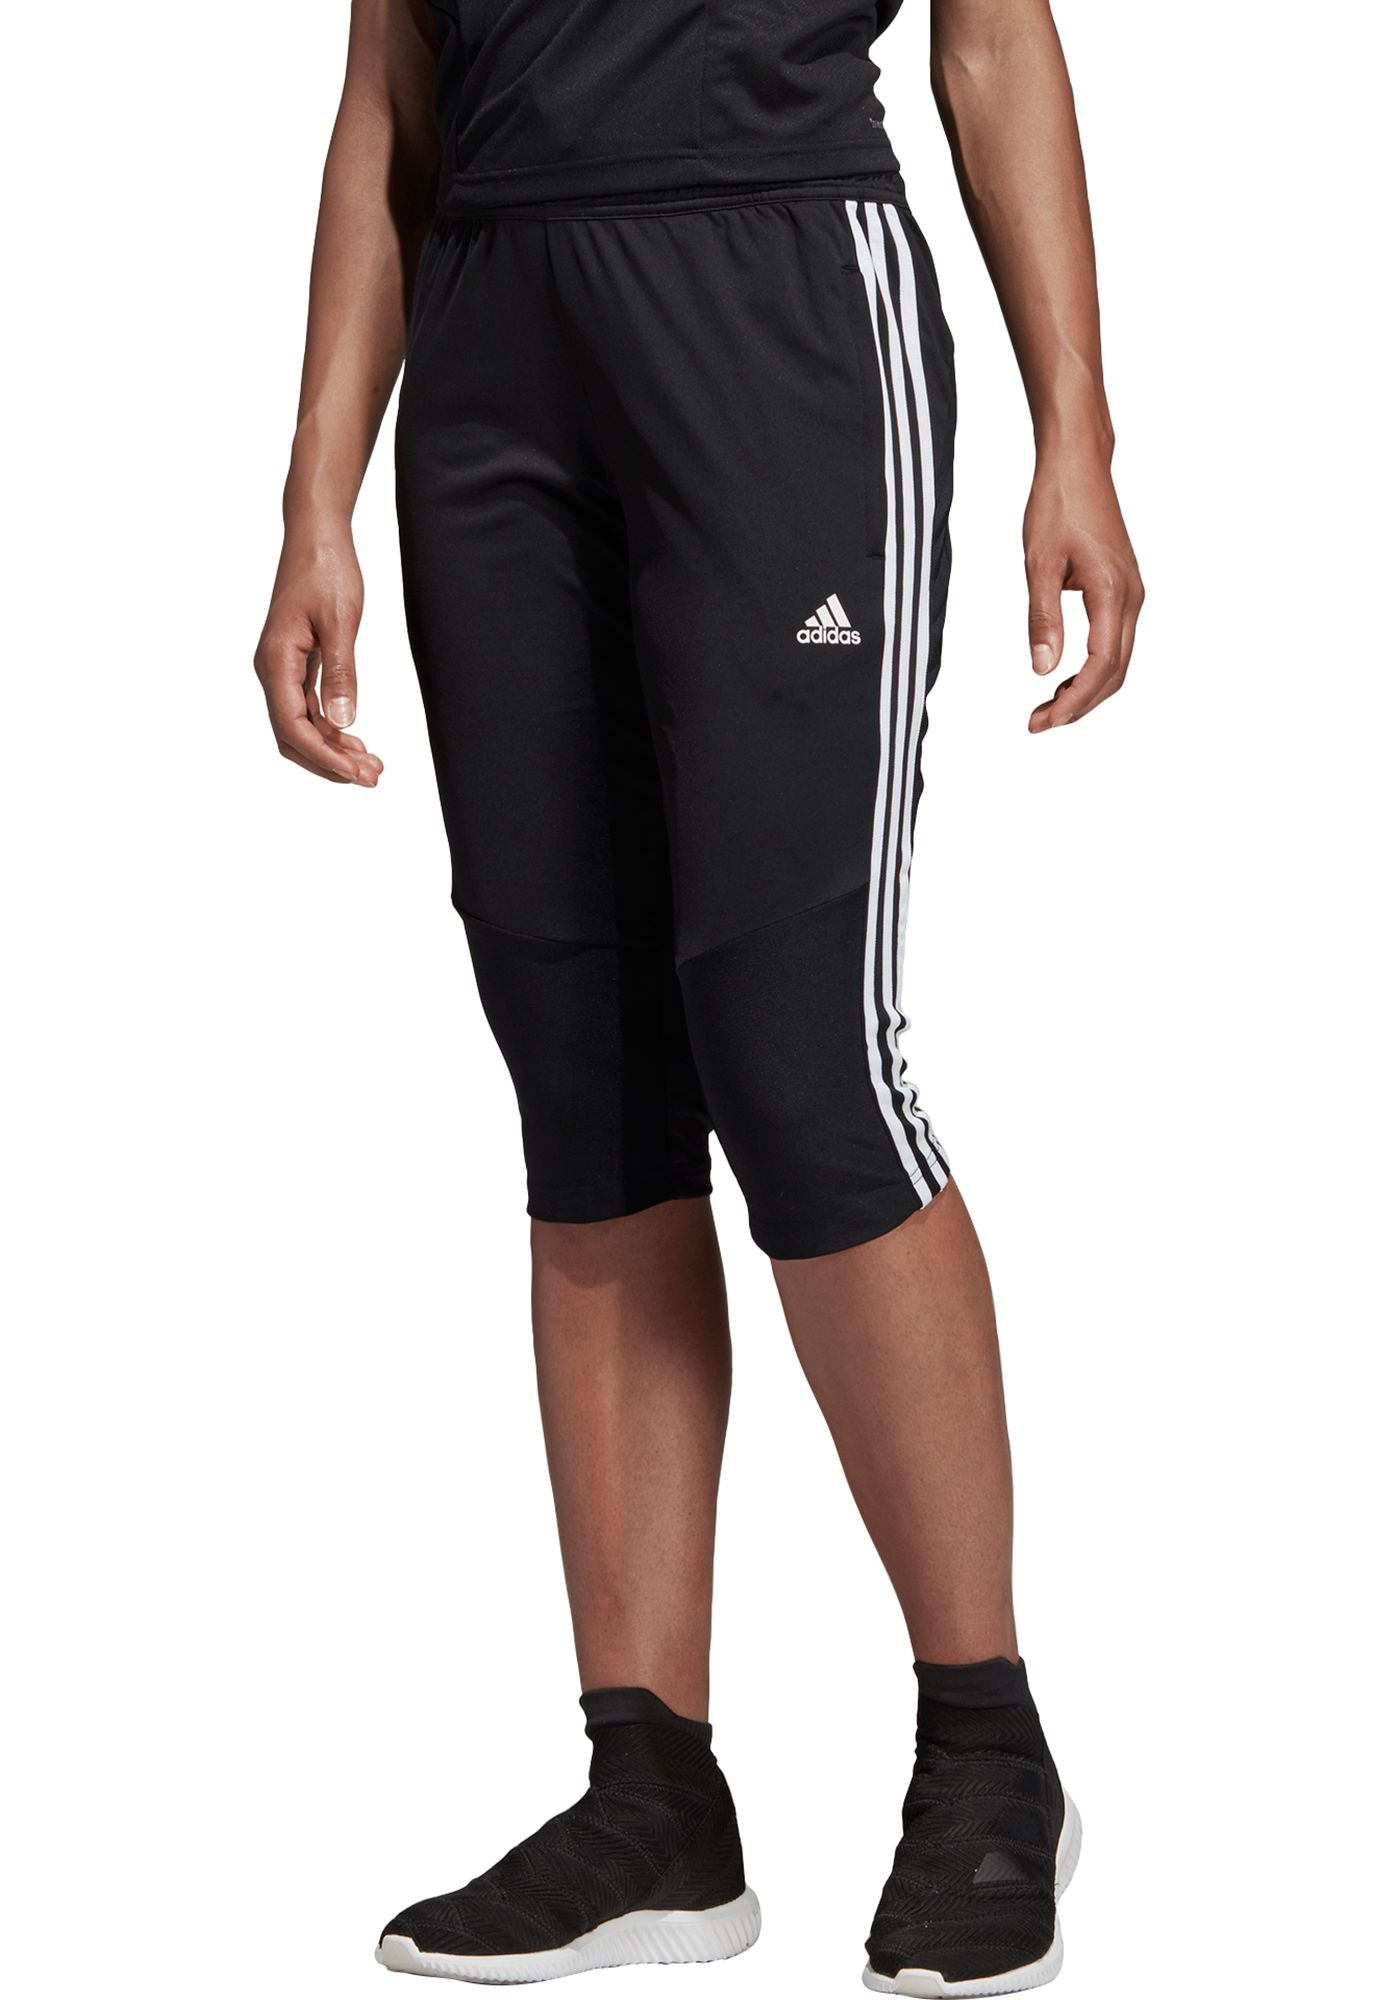 adidas Women's Tiro 19 3/4 Pants